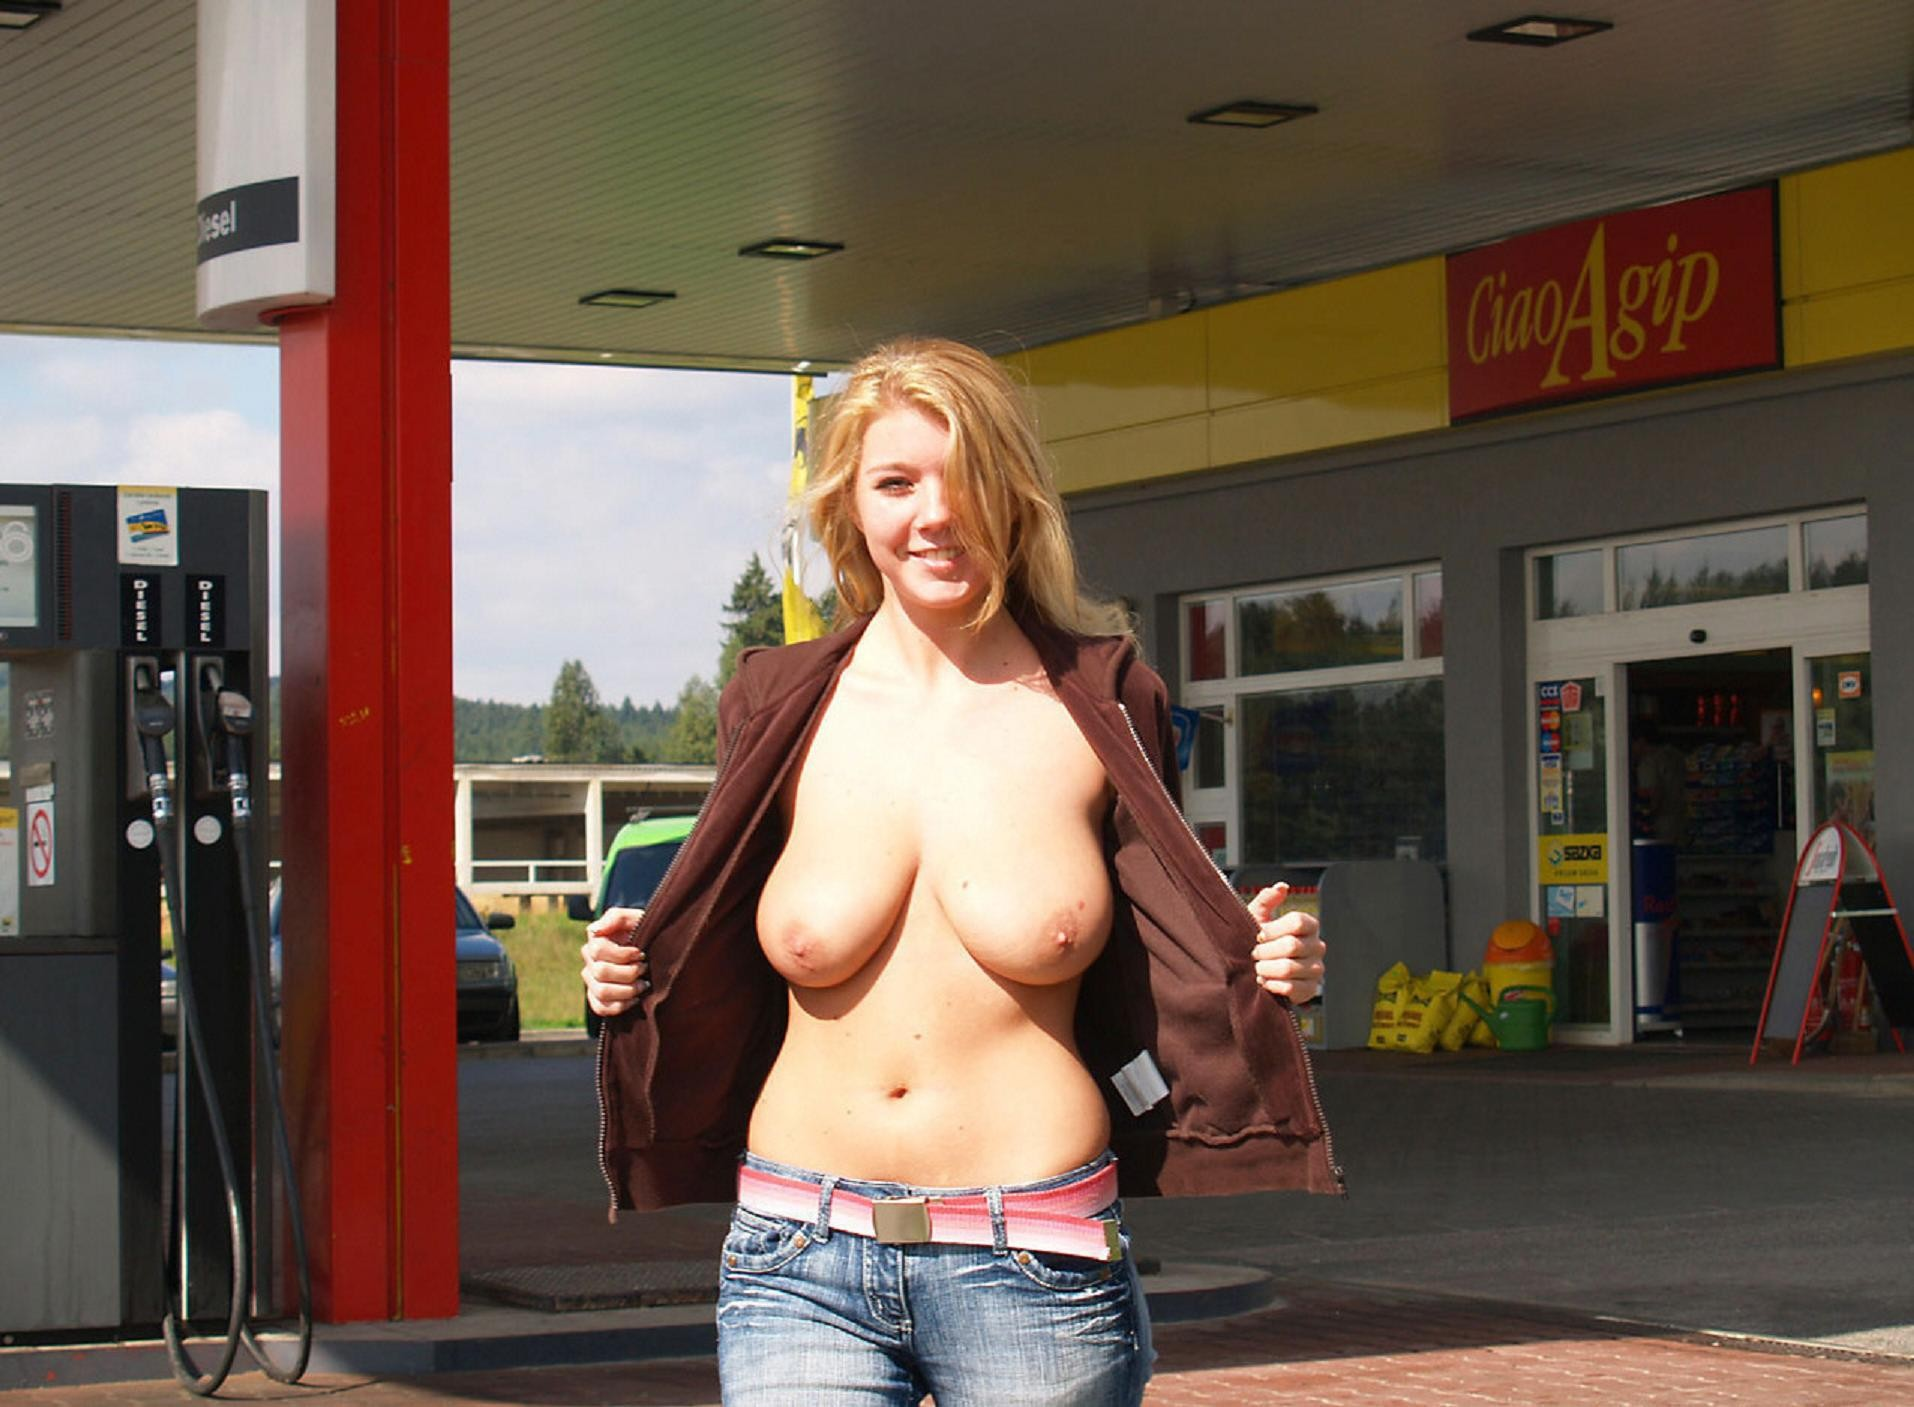 Hot Girls Flashing Public